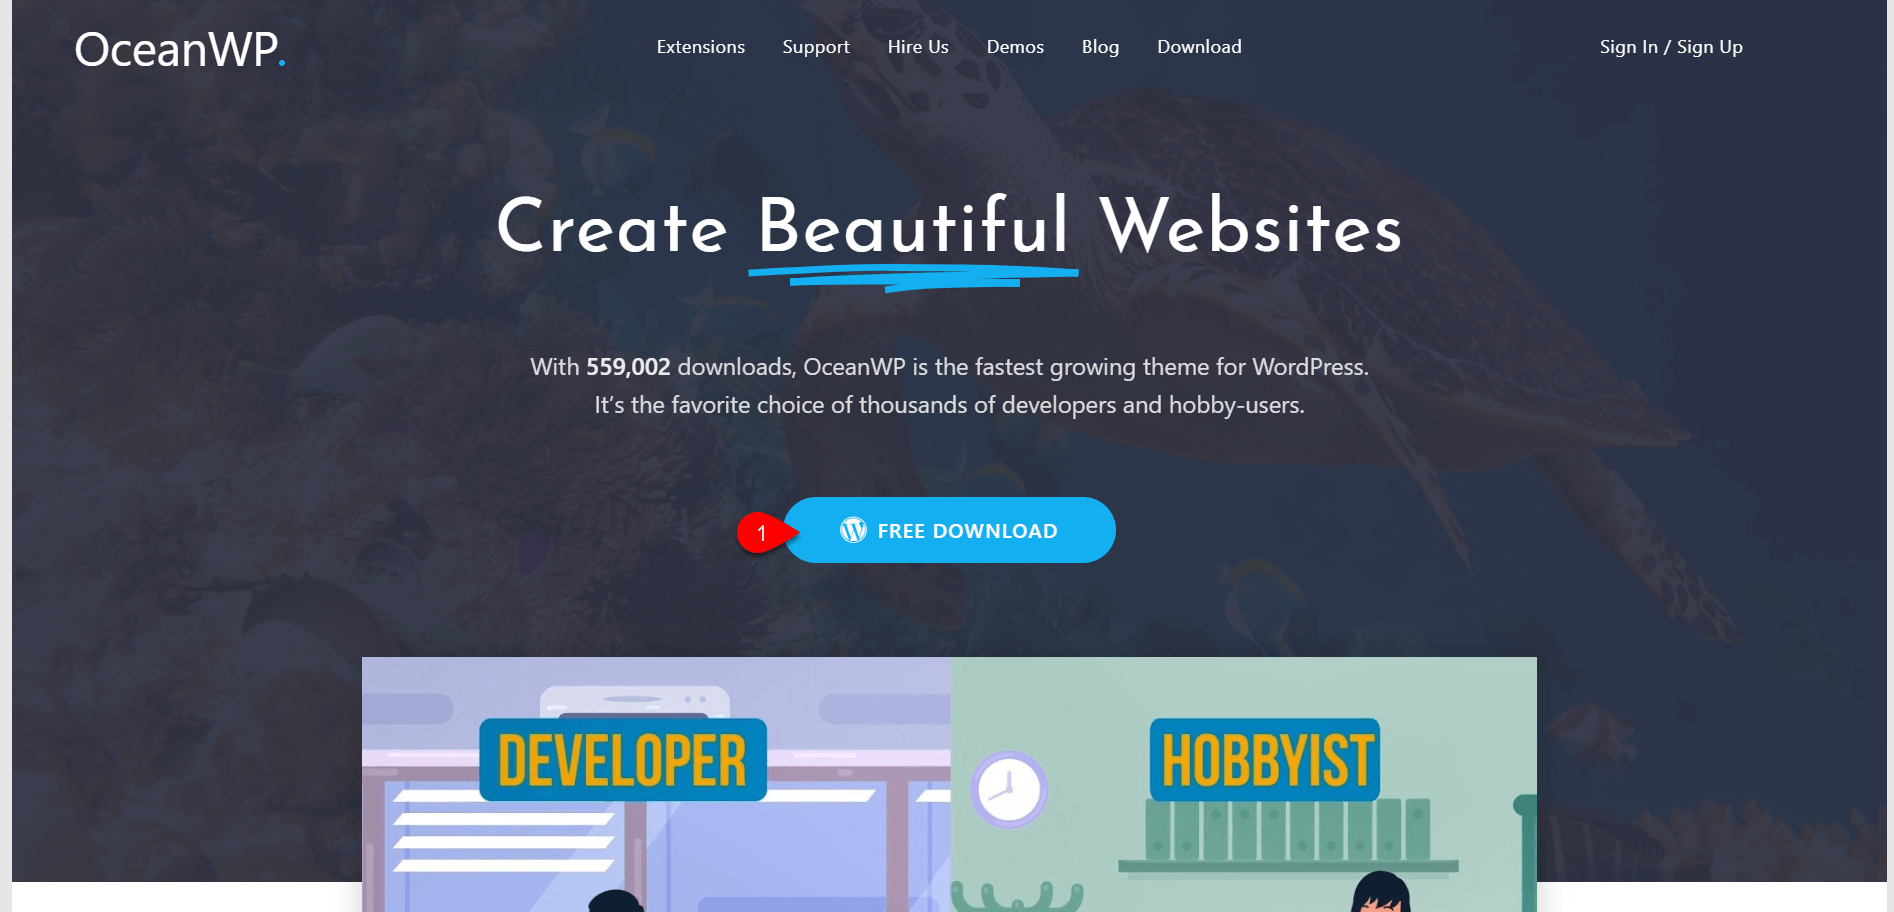 OceanWP WordPress Theme Review 7